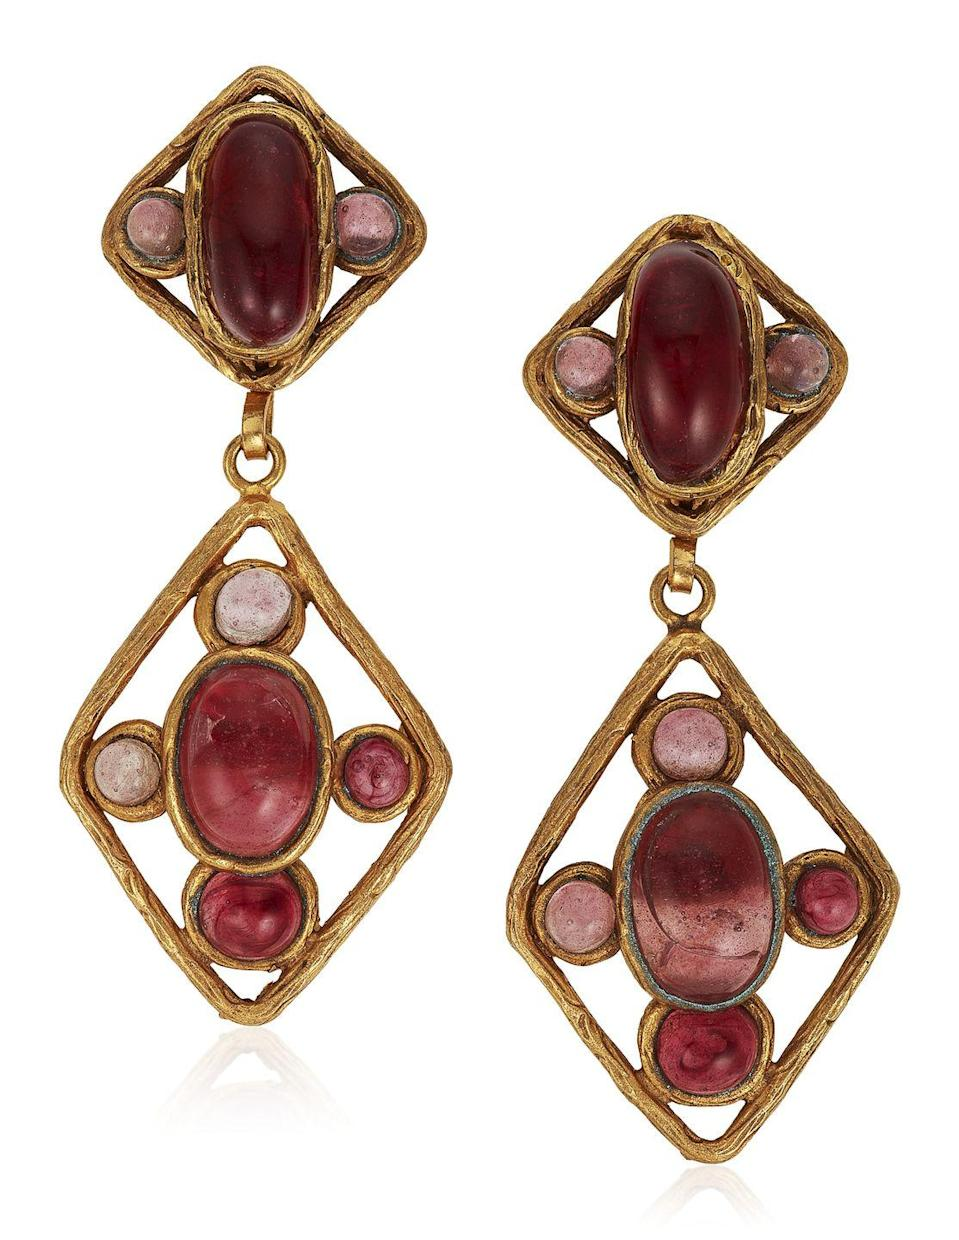 <p>These splendid pink and red earrings are estimated to be worth $500 to $700.</p>